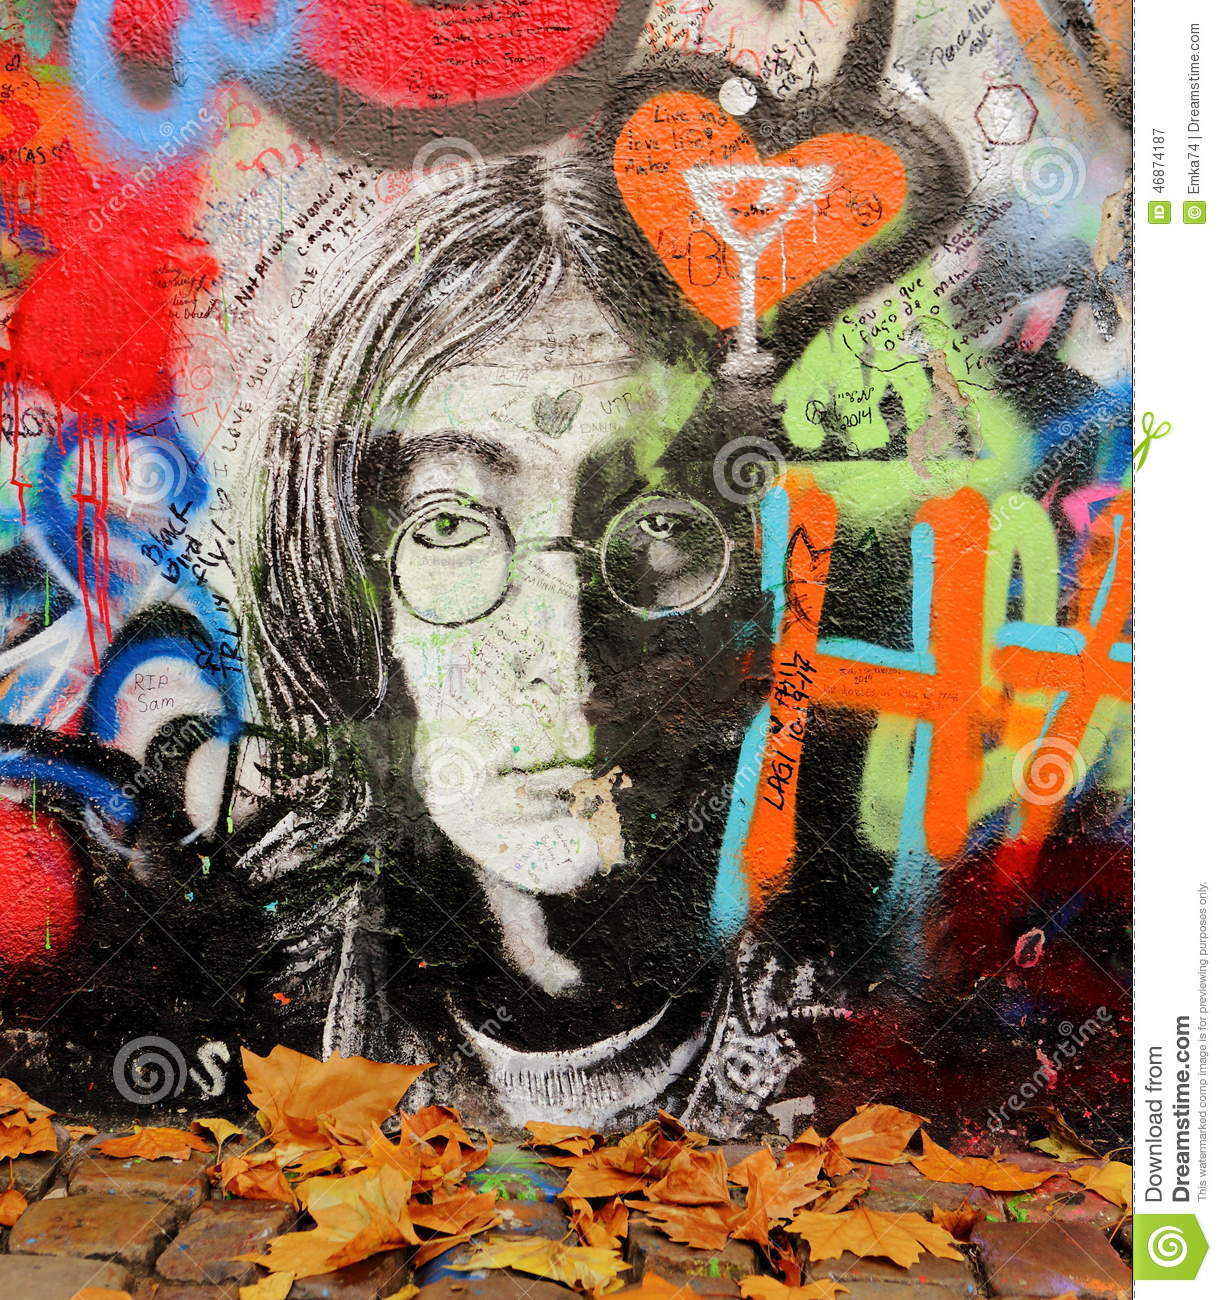 Prague czech republic november 14 the lennon wall since the 1980s is filled with john lennon inspired graffiti and pieces of lyrics from beatles songs